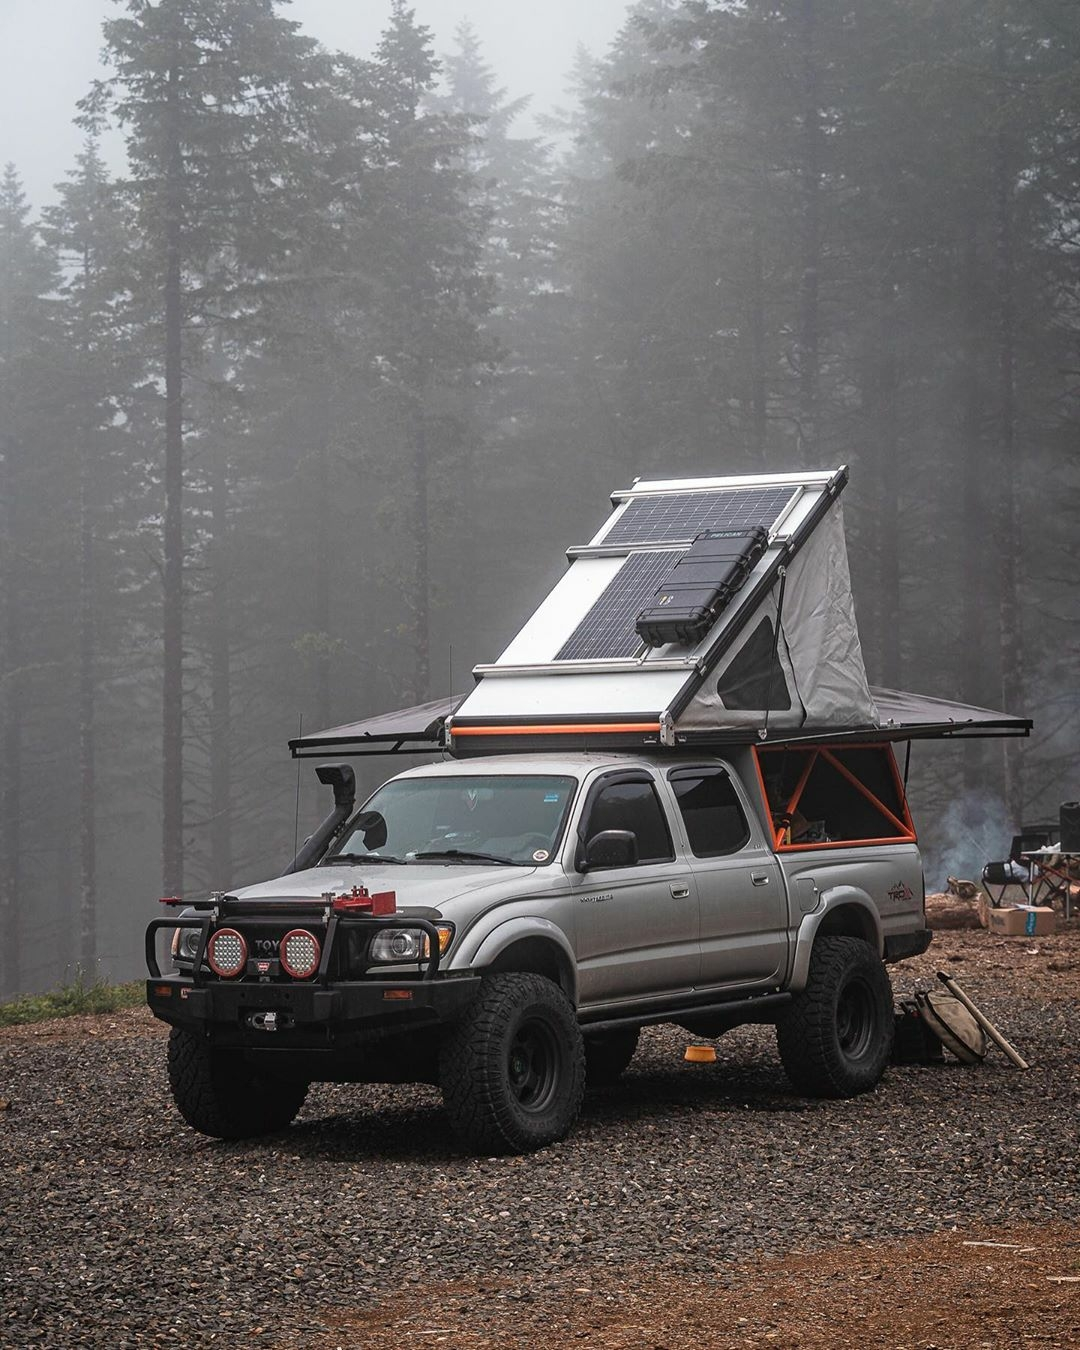 truck camper with solar panels